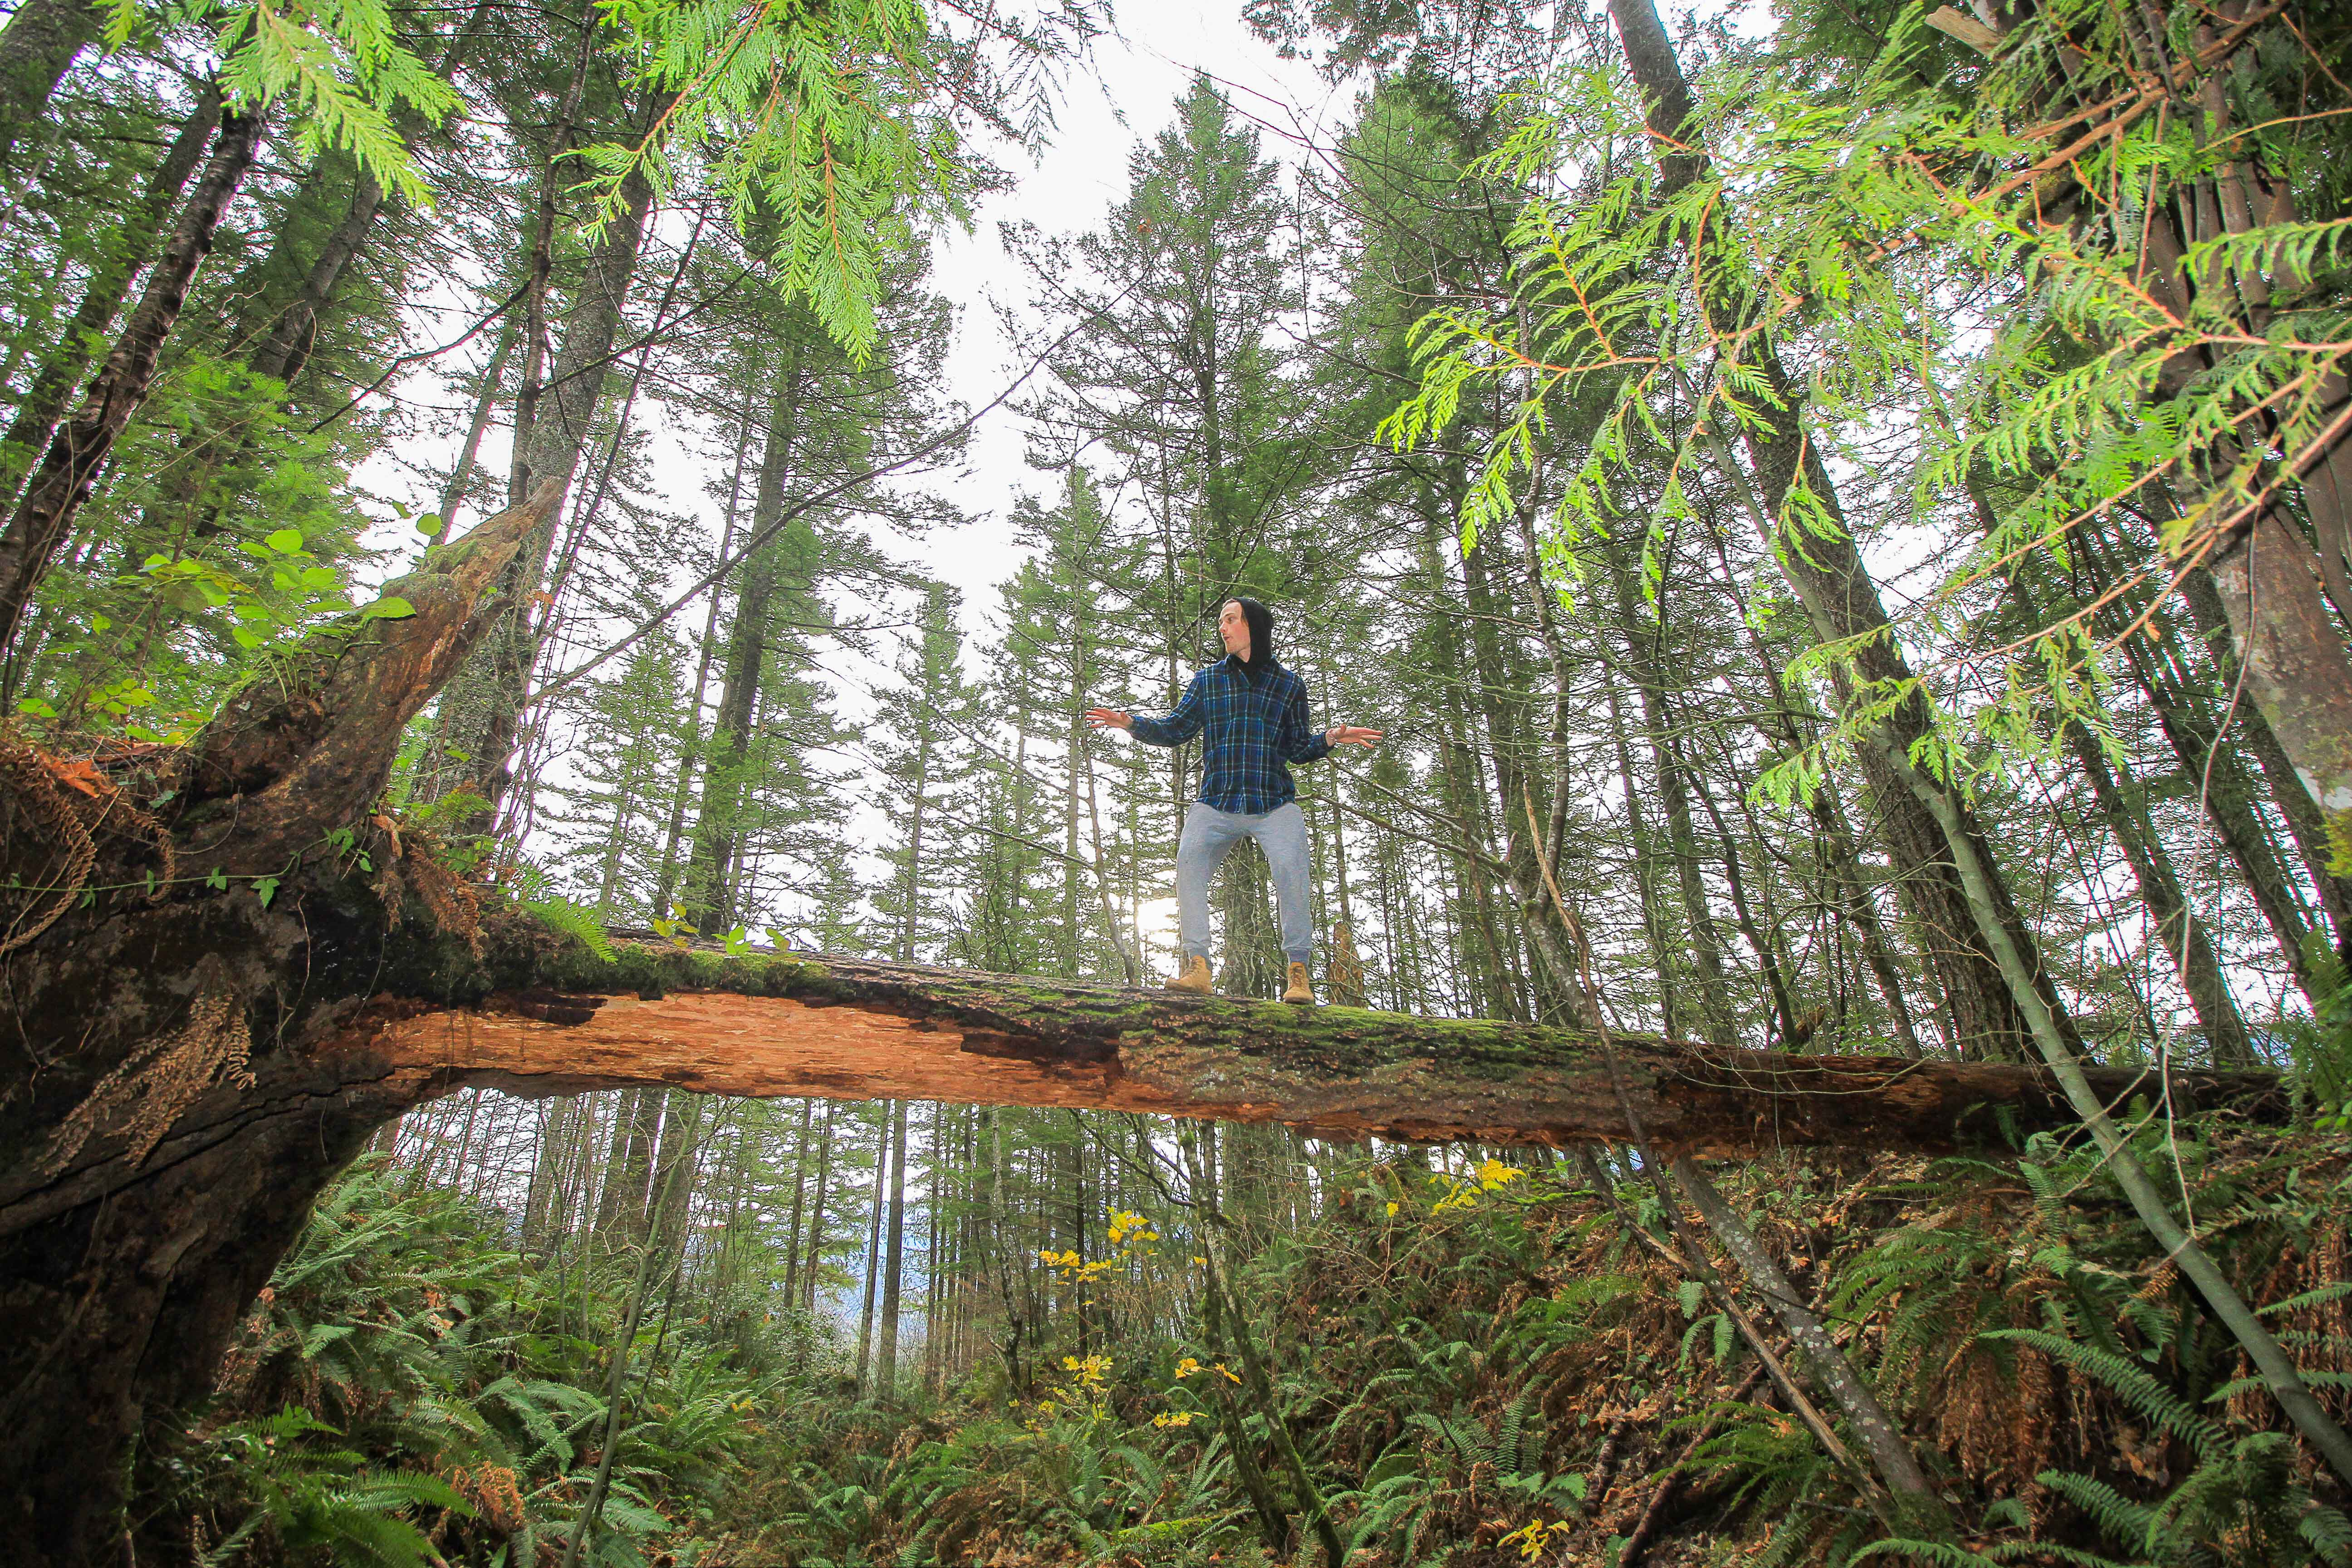 A person climbing trees in Olympic National Park